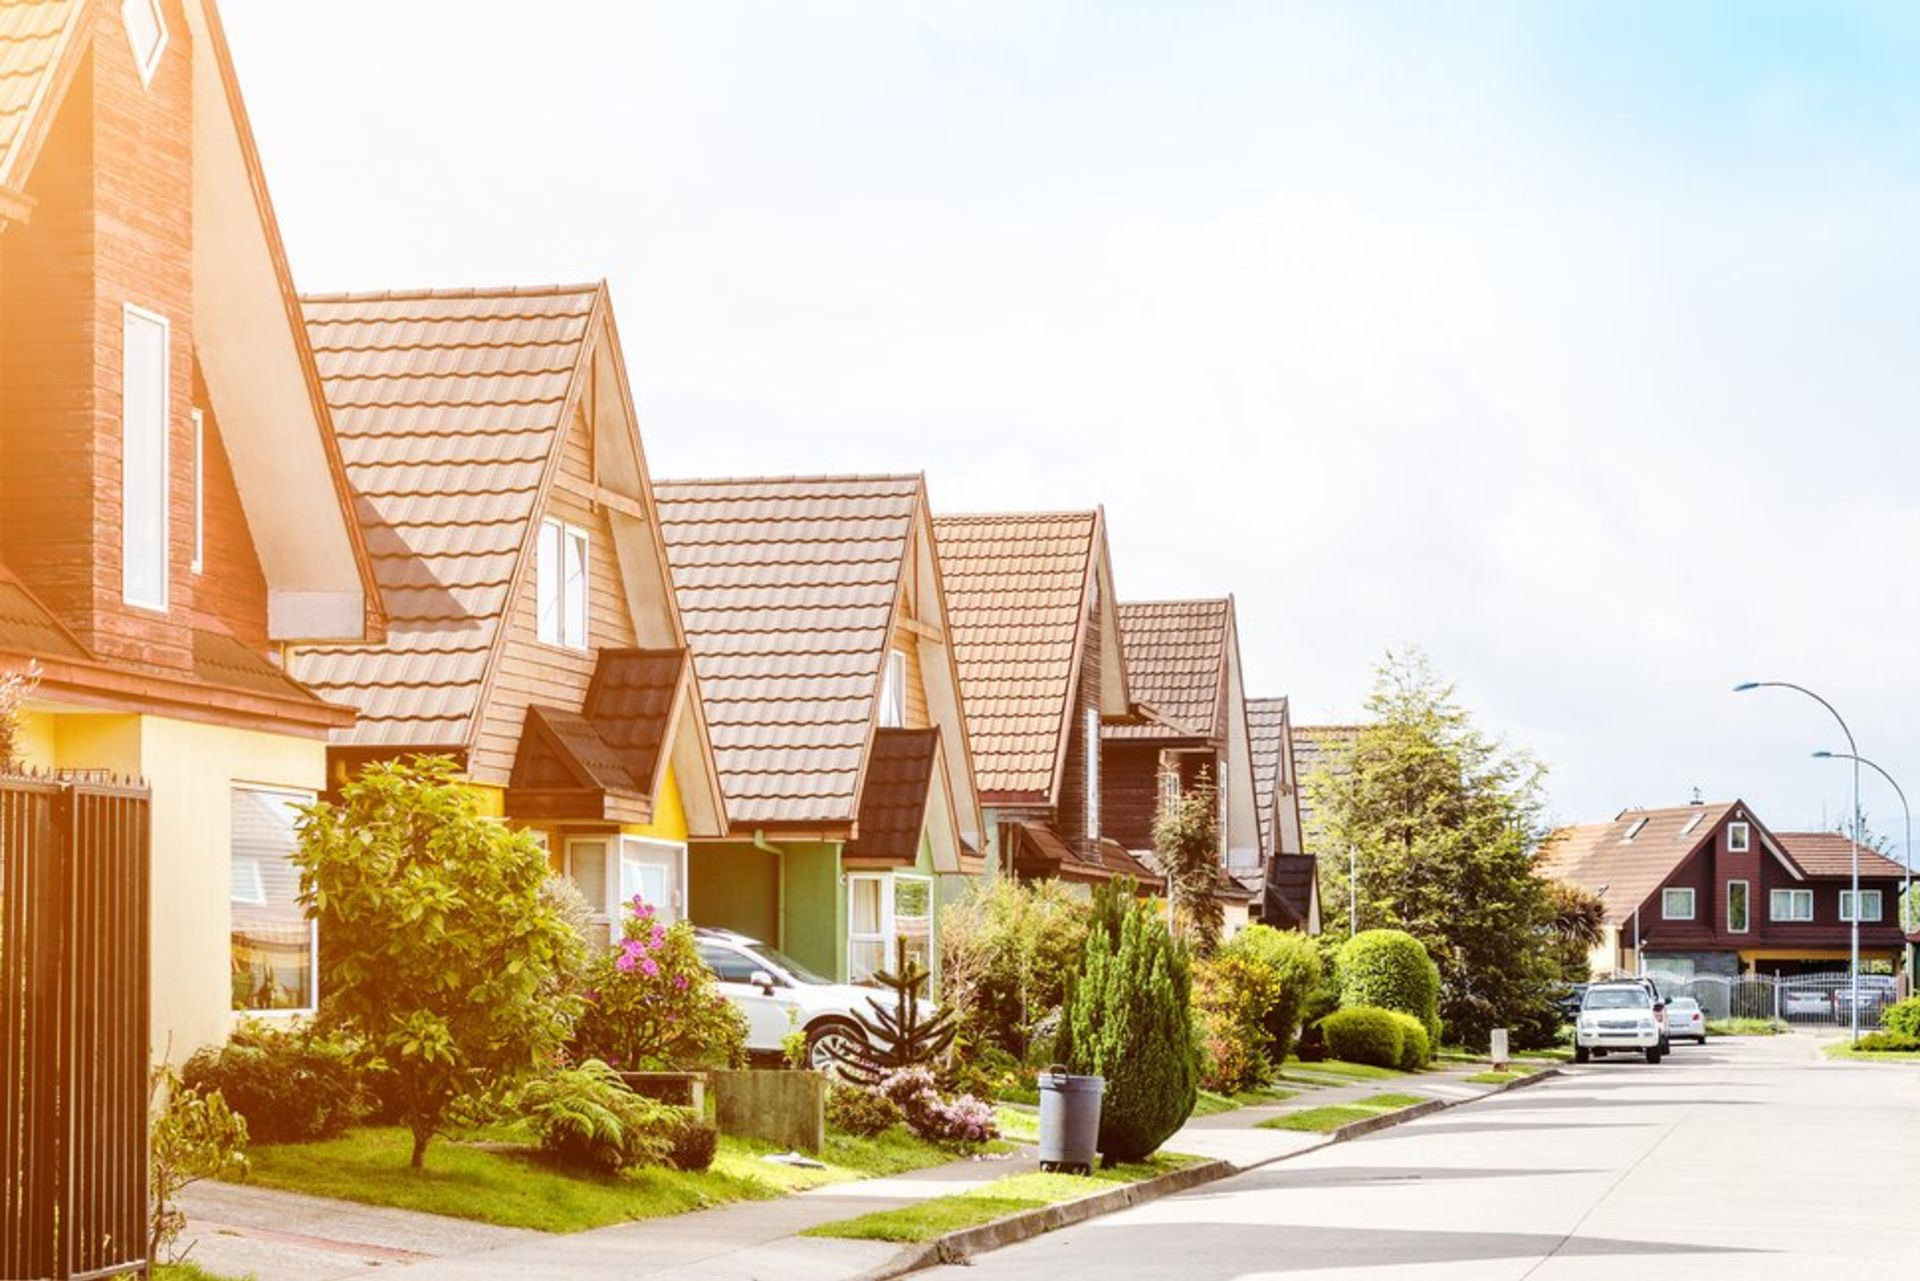 3 Reasons to Invest in Single-Family Rentals